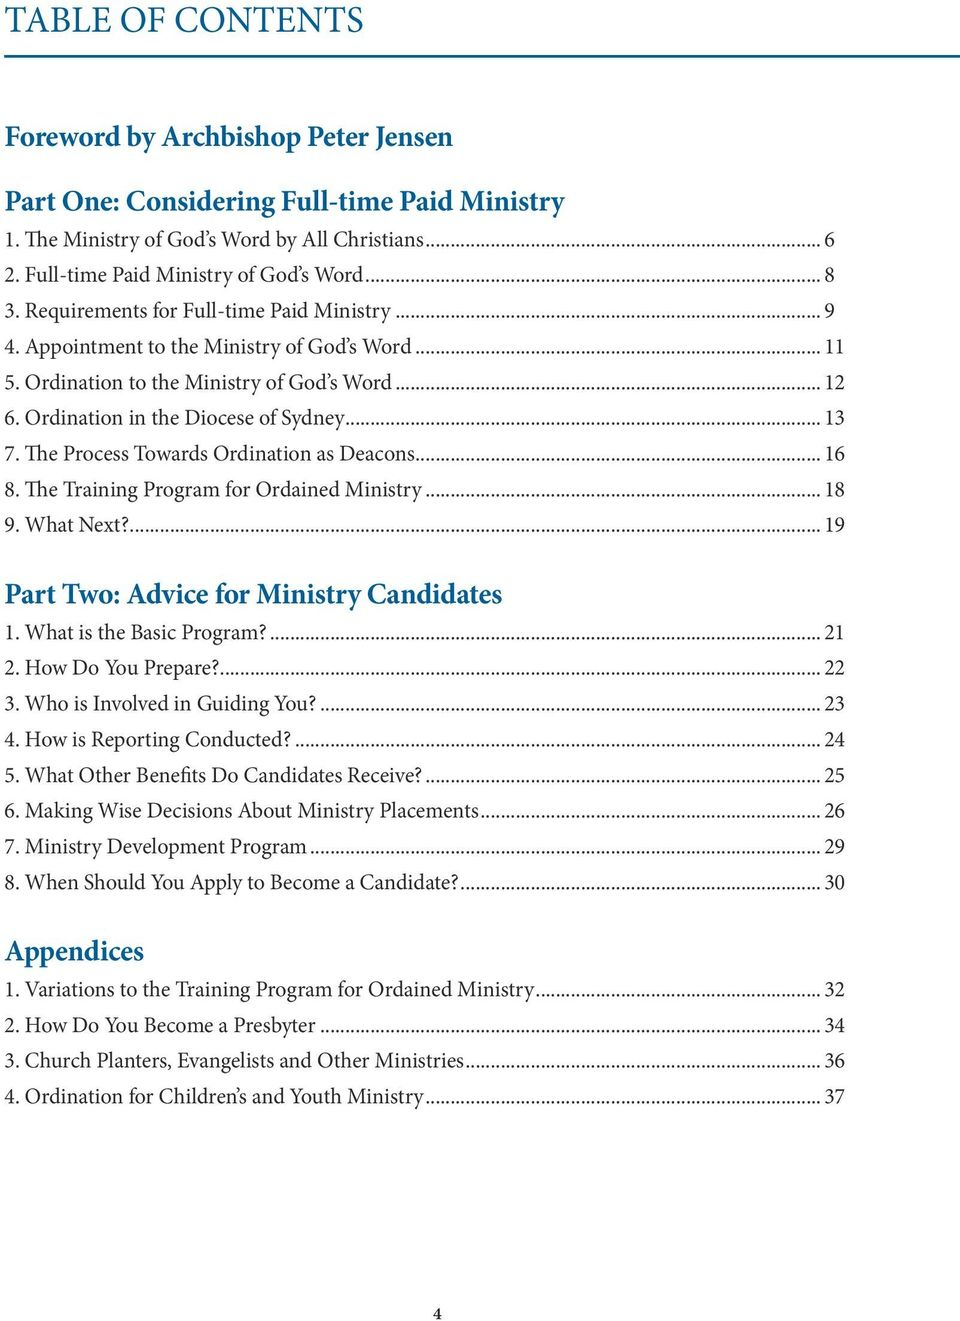 The Process Towards Ordination as Deacons... 16 8. The Training Program for Ordained Ministry... 18 9. What Next?... 19 Part Two: Advice for Ministry Candidates 1. What is the Basic Program?... 21 2.